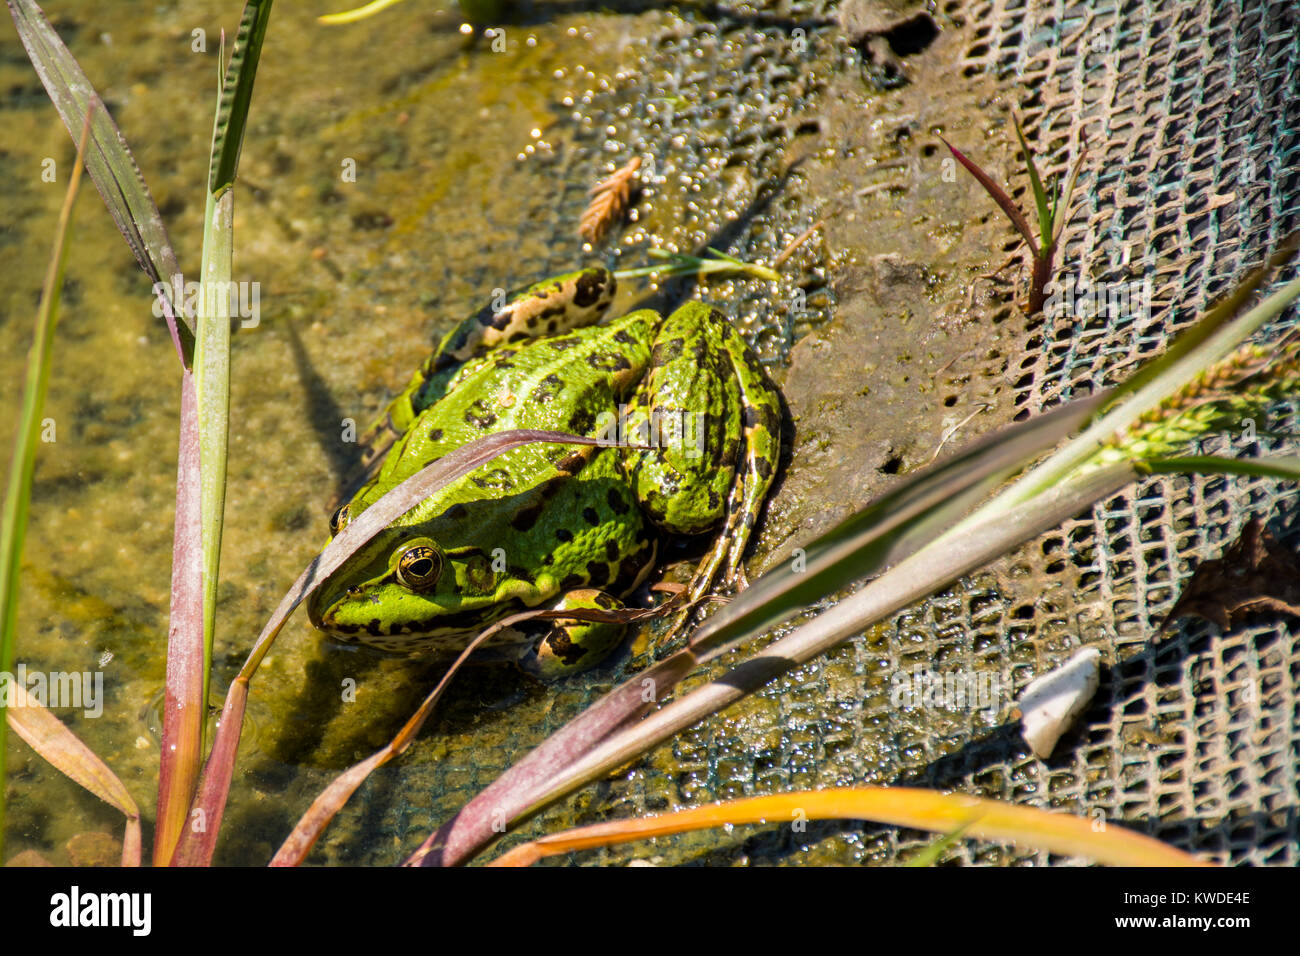 Green frog named Pelophylax kl. esculentus with brown stains sitting on the border pond - Stock Image